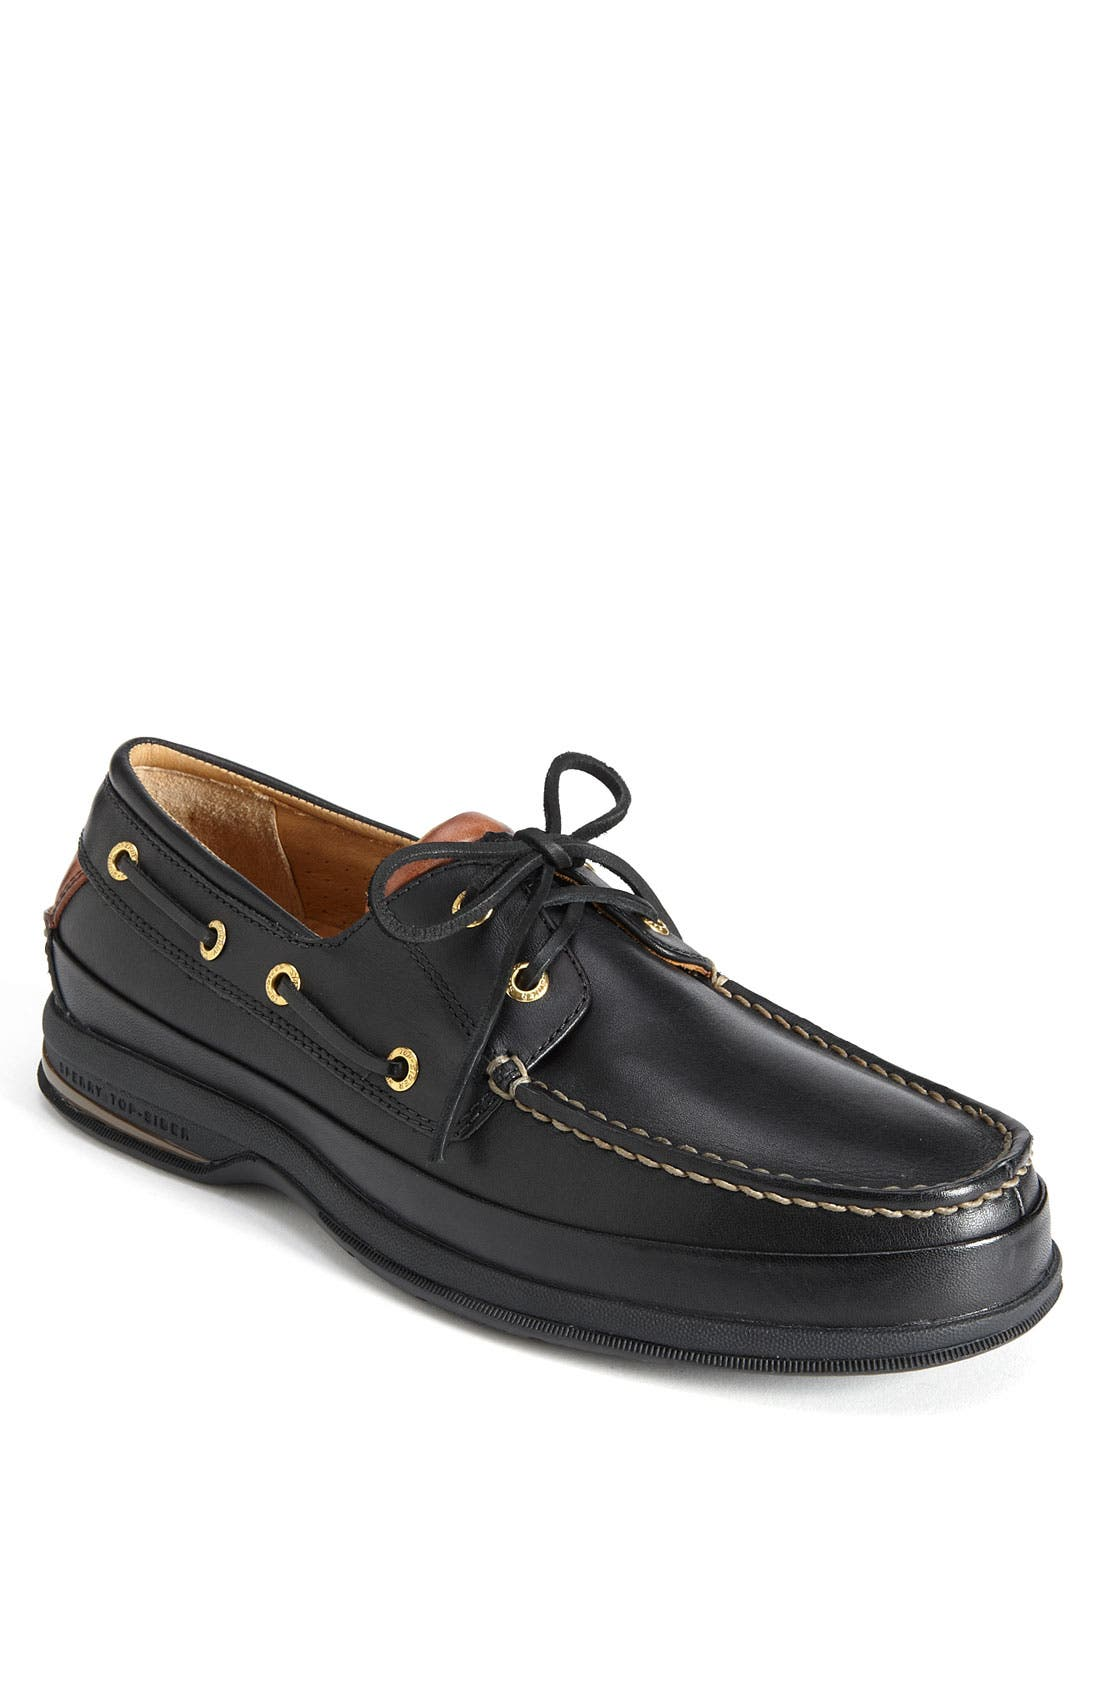 Main Image - Sperry 'Gold Cup 2-Eye ASV' Boat Shoe (Men)